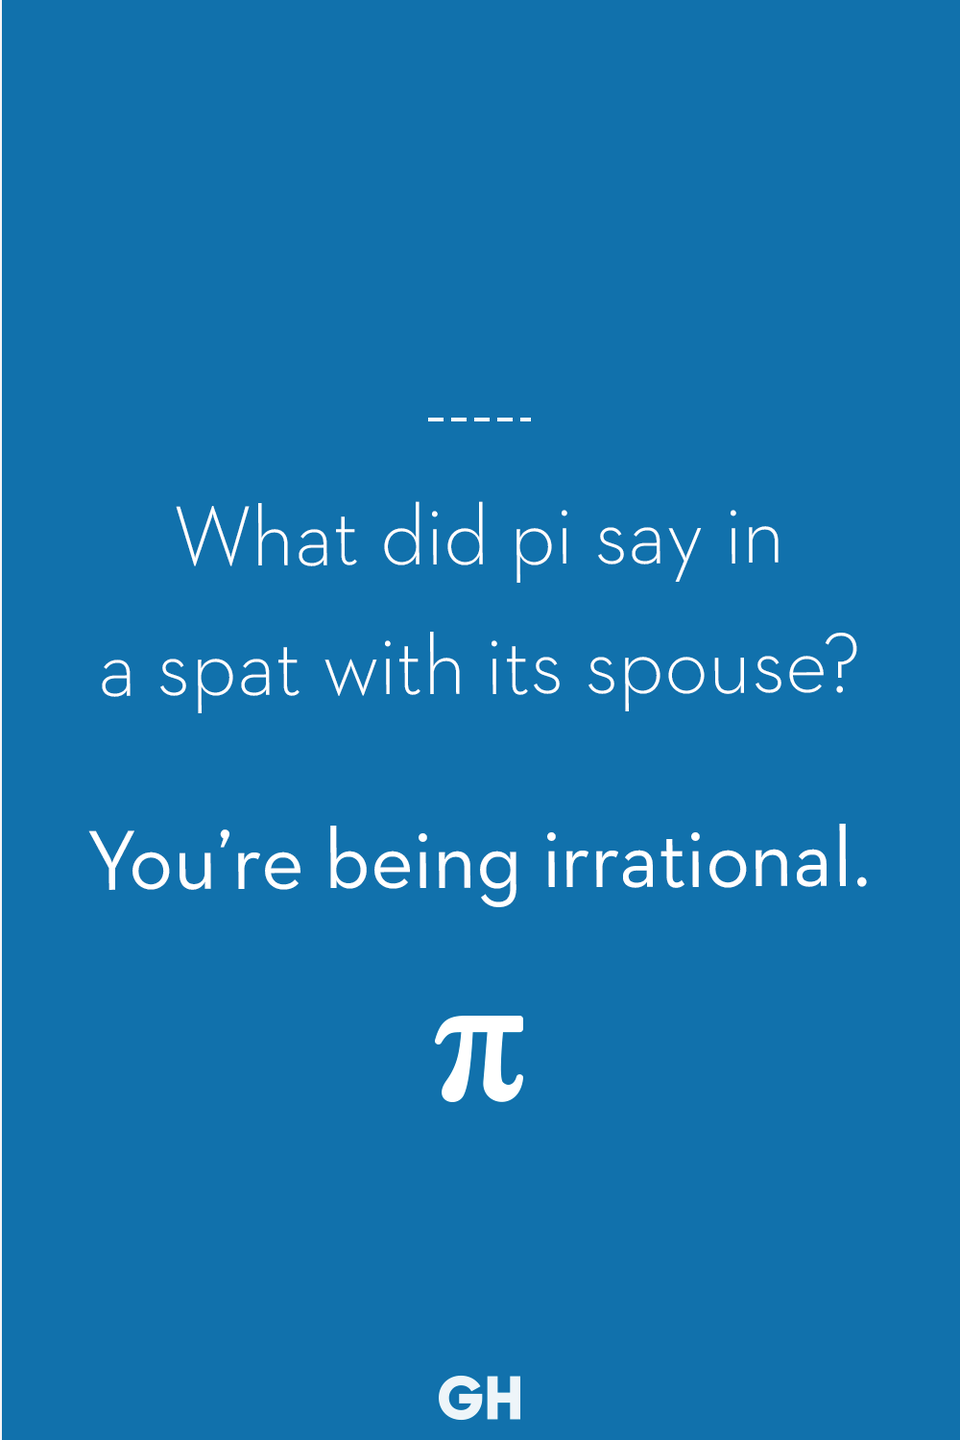 <p>You're being irrational.</p>